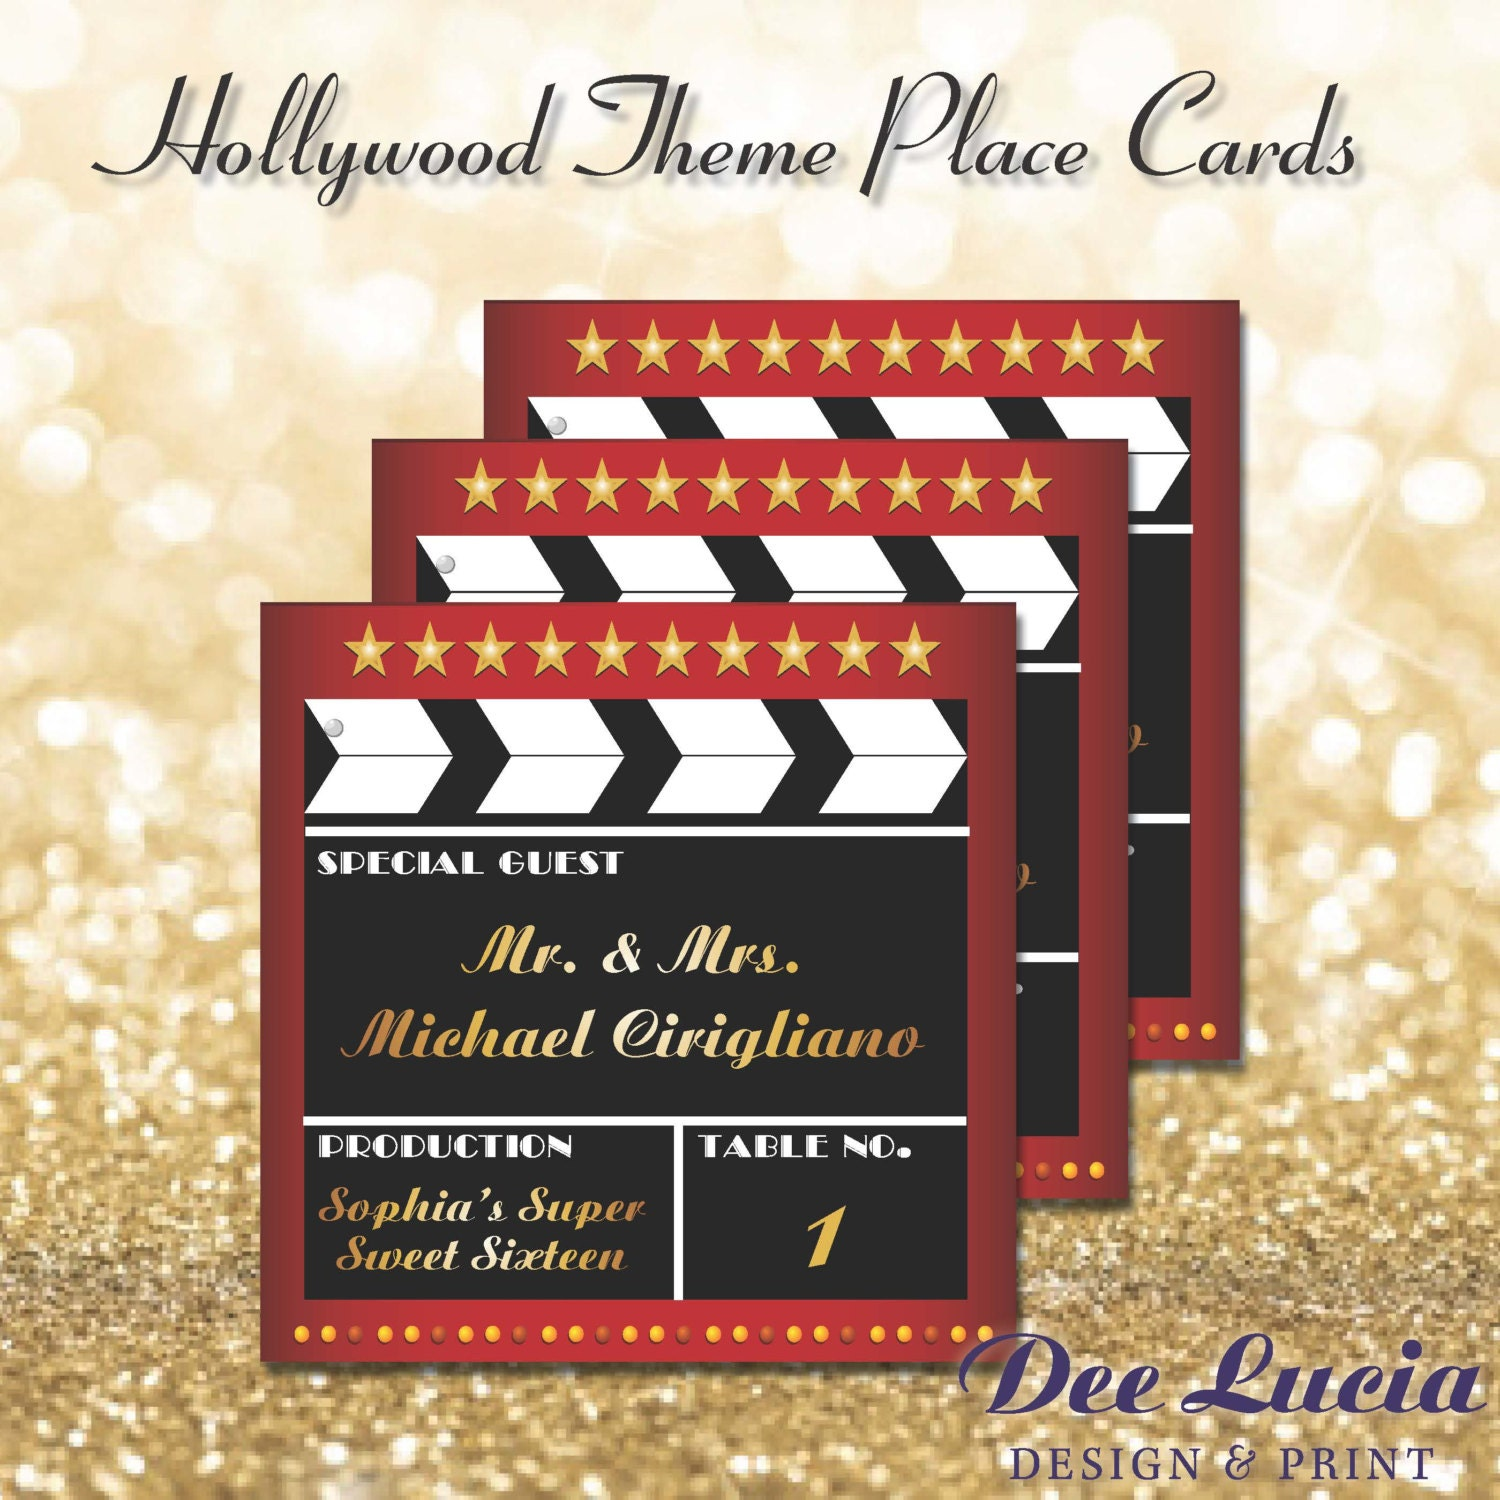 Hollywood theme place cards printed with guest name and table